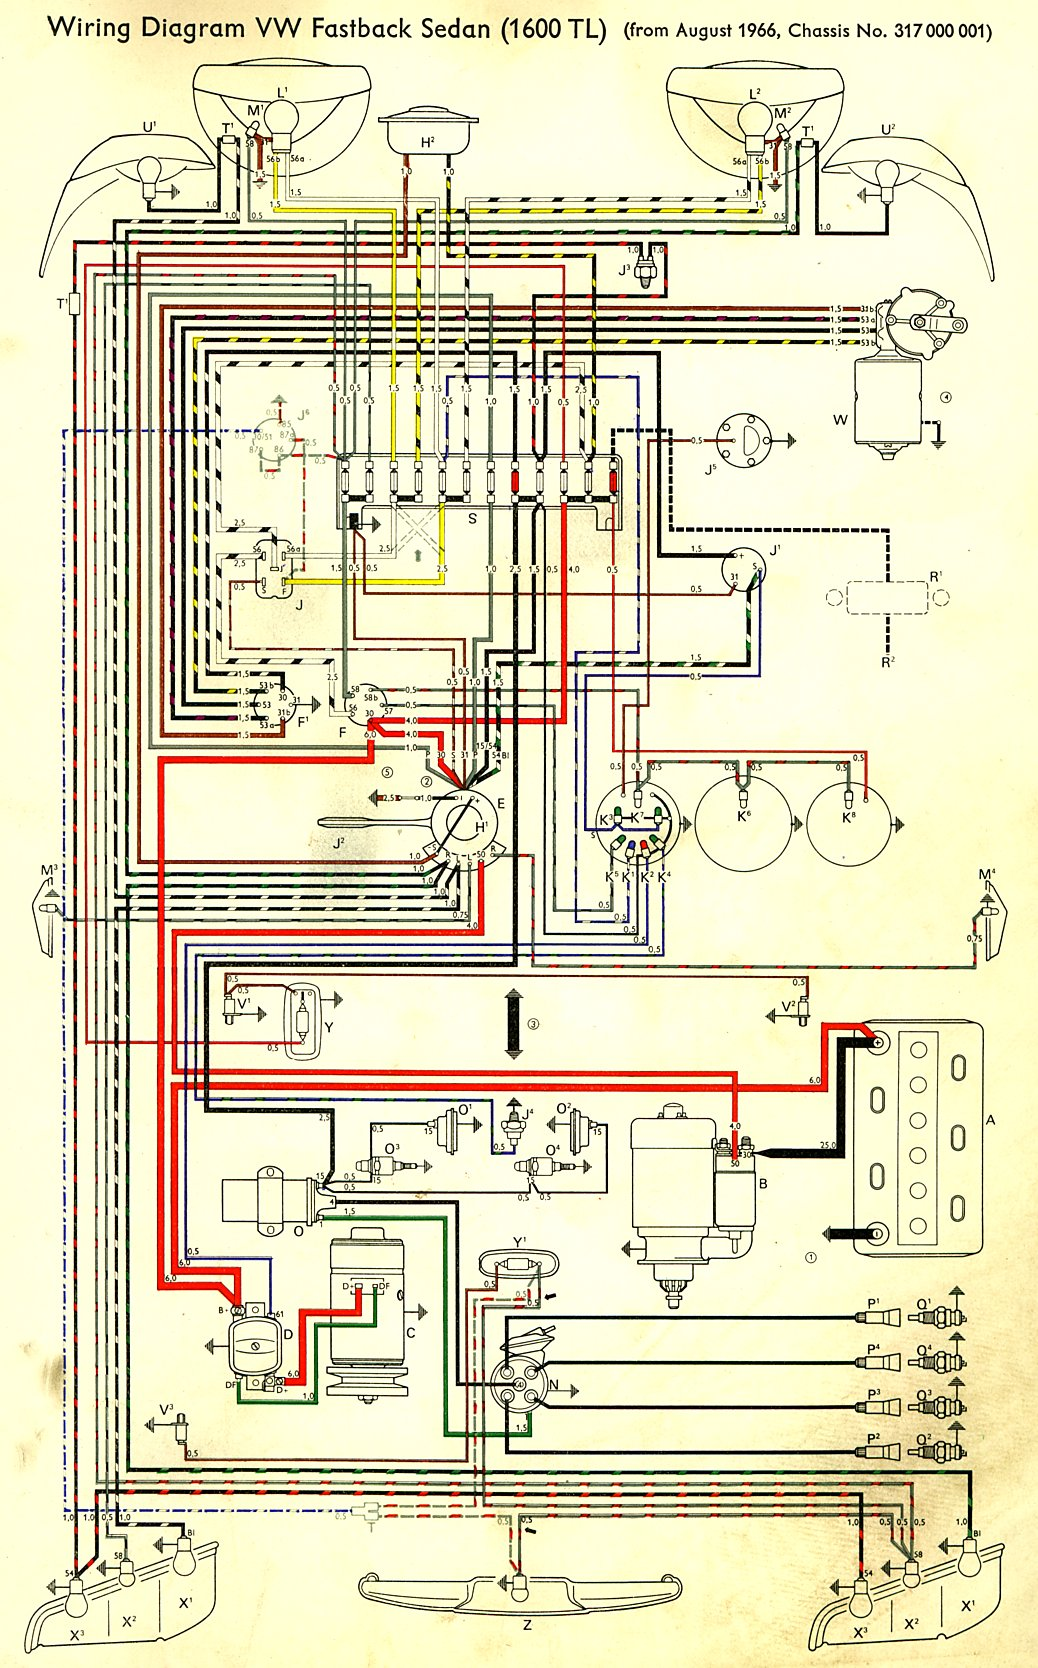 Vw Type 3 Wiring Diagram - Wiring Diagram Dash  Vw Type Coil Wiring Diagram on vw bus wiring diagram, type 1 vw engine diagram, vw bug wiring diagram, vw gti wiring diagram, vw r32 wiring diagram, 72 vw wiring diagram, vw thing wiring diagram, vw 1600 engine diagram, jaguar e type wiring diagram, vw engine wiring diagram, vw type 2 wiring diagram, air cooled vw wiring diagram, 1965 vw wiring diagram, vw type 4 wiring diagram, vw jetta wiring diagram, vw alternator conversion wiring diagram, vw ignition wiring diagram, 1973 vw wiring diagram, 1974 vw engine diagram, 68 vw wiring diagram,